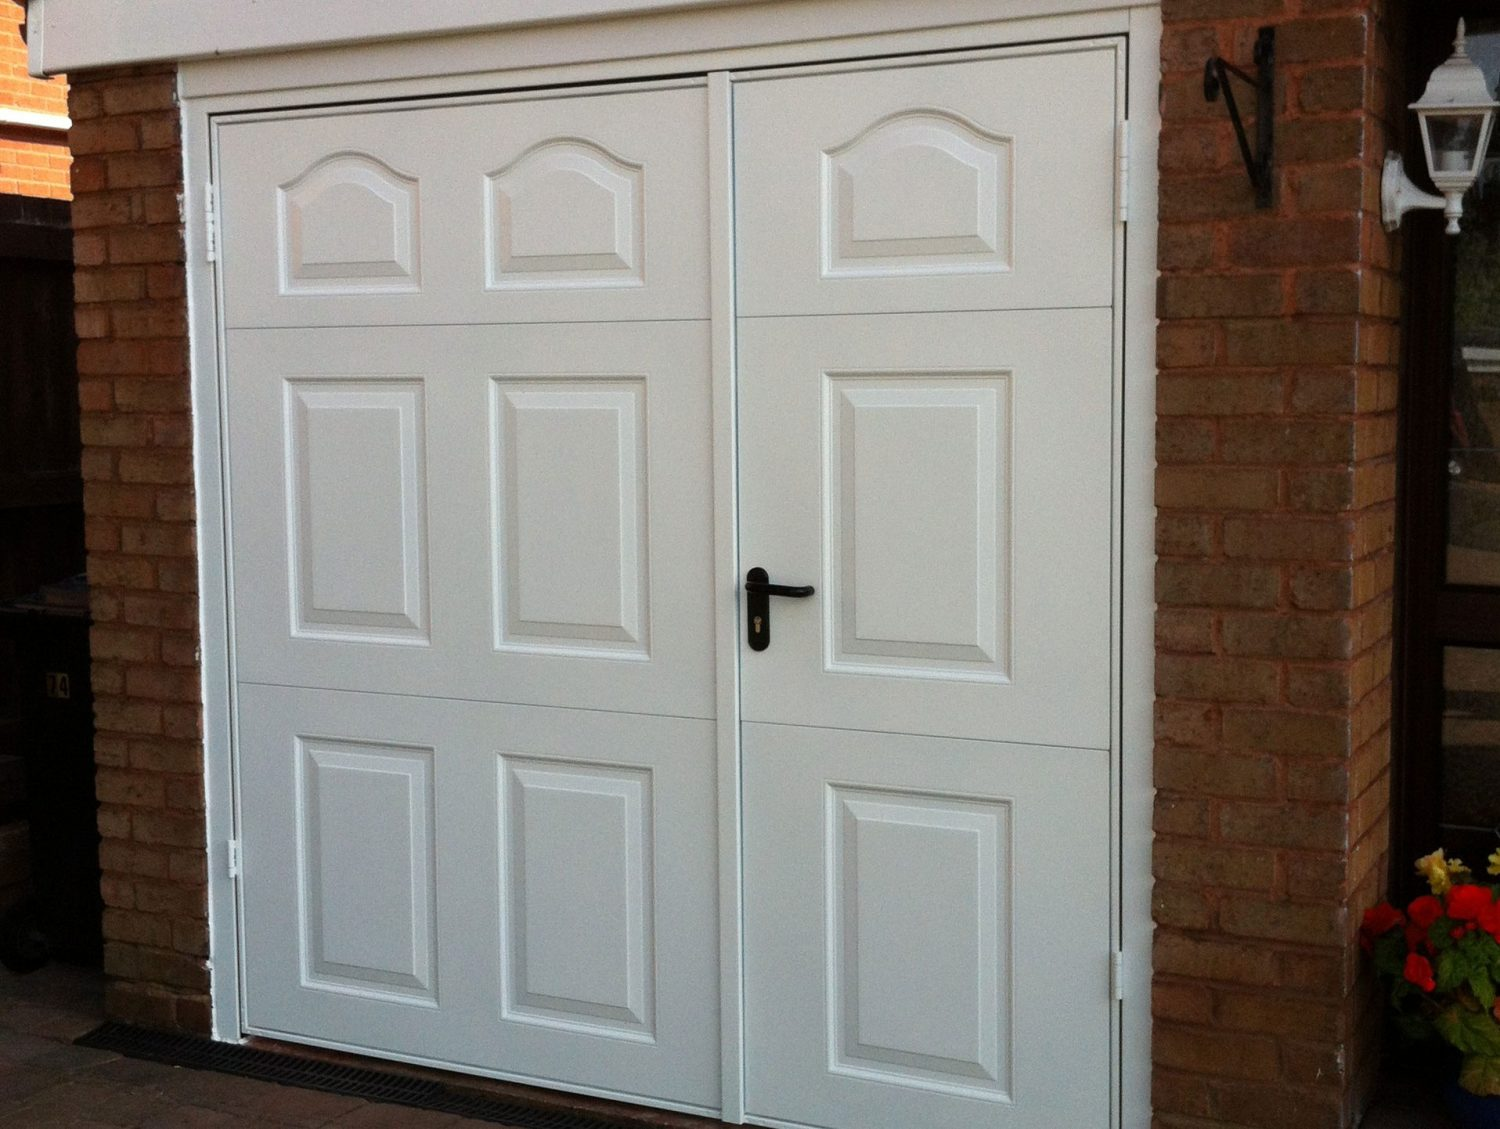 ohio columbus large repair not what door is happen garage balanced can designs of my if size full